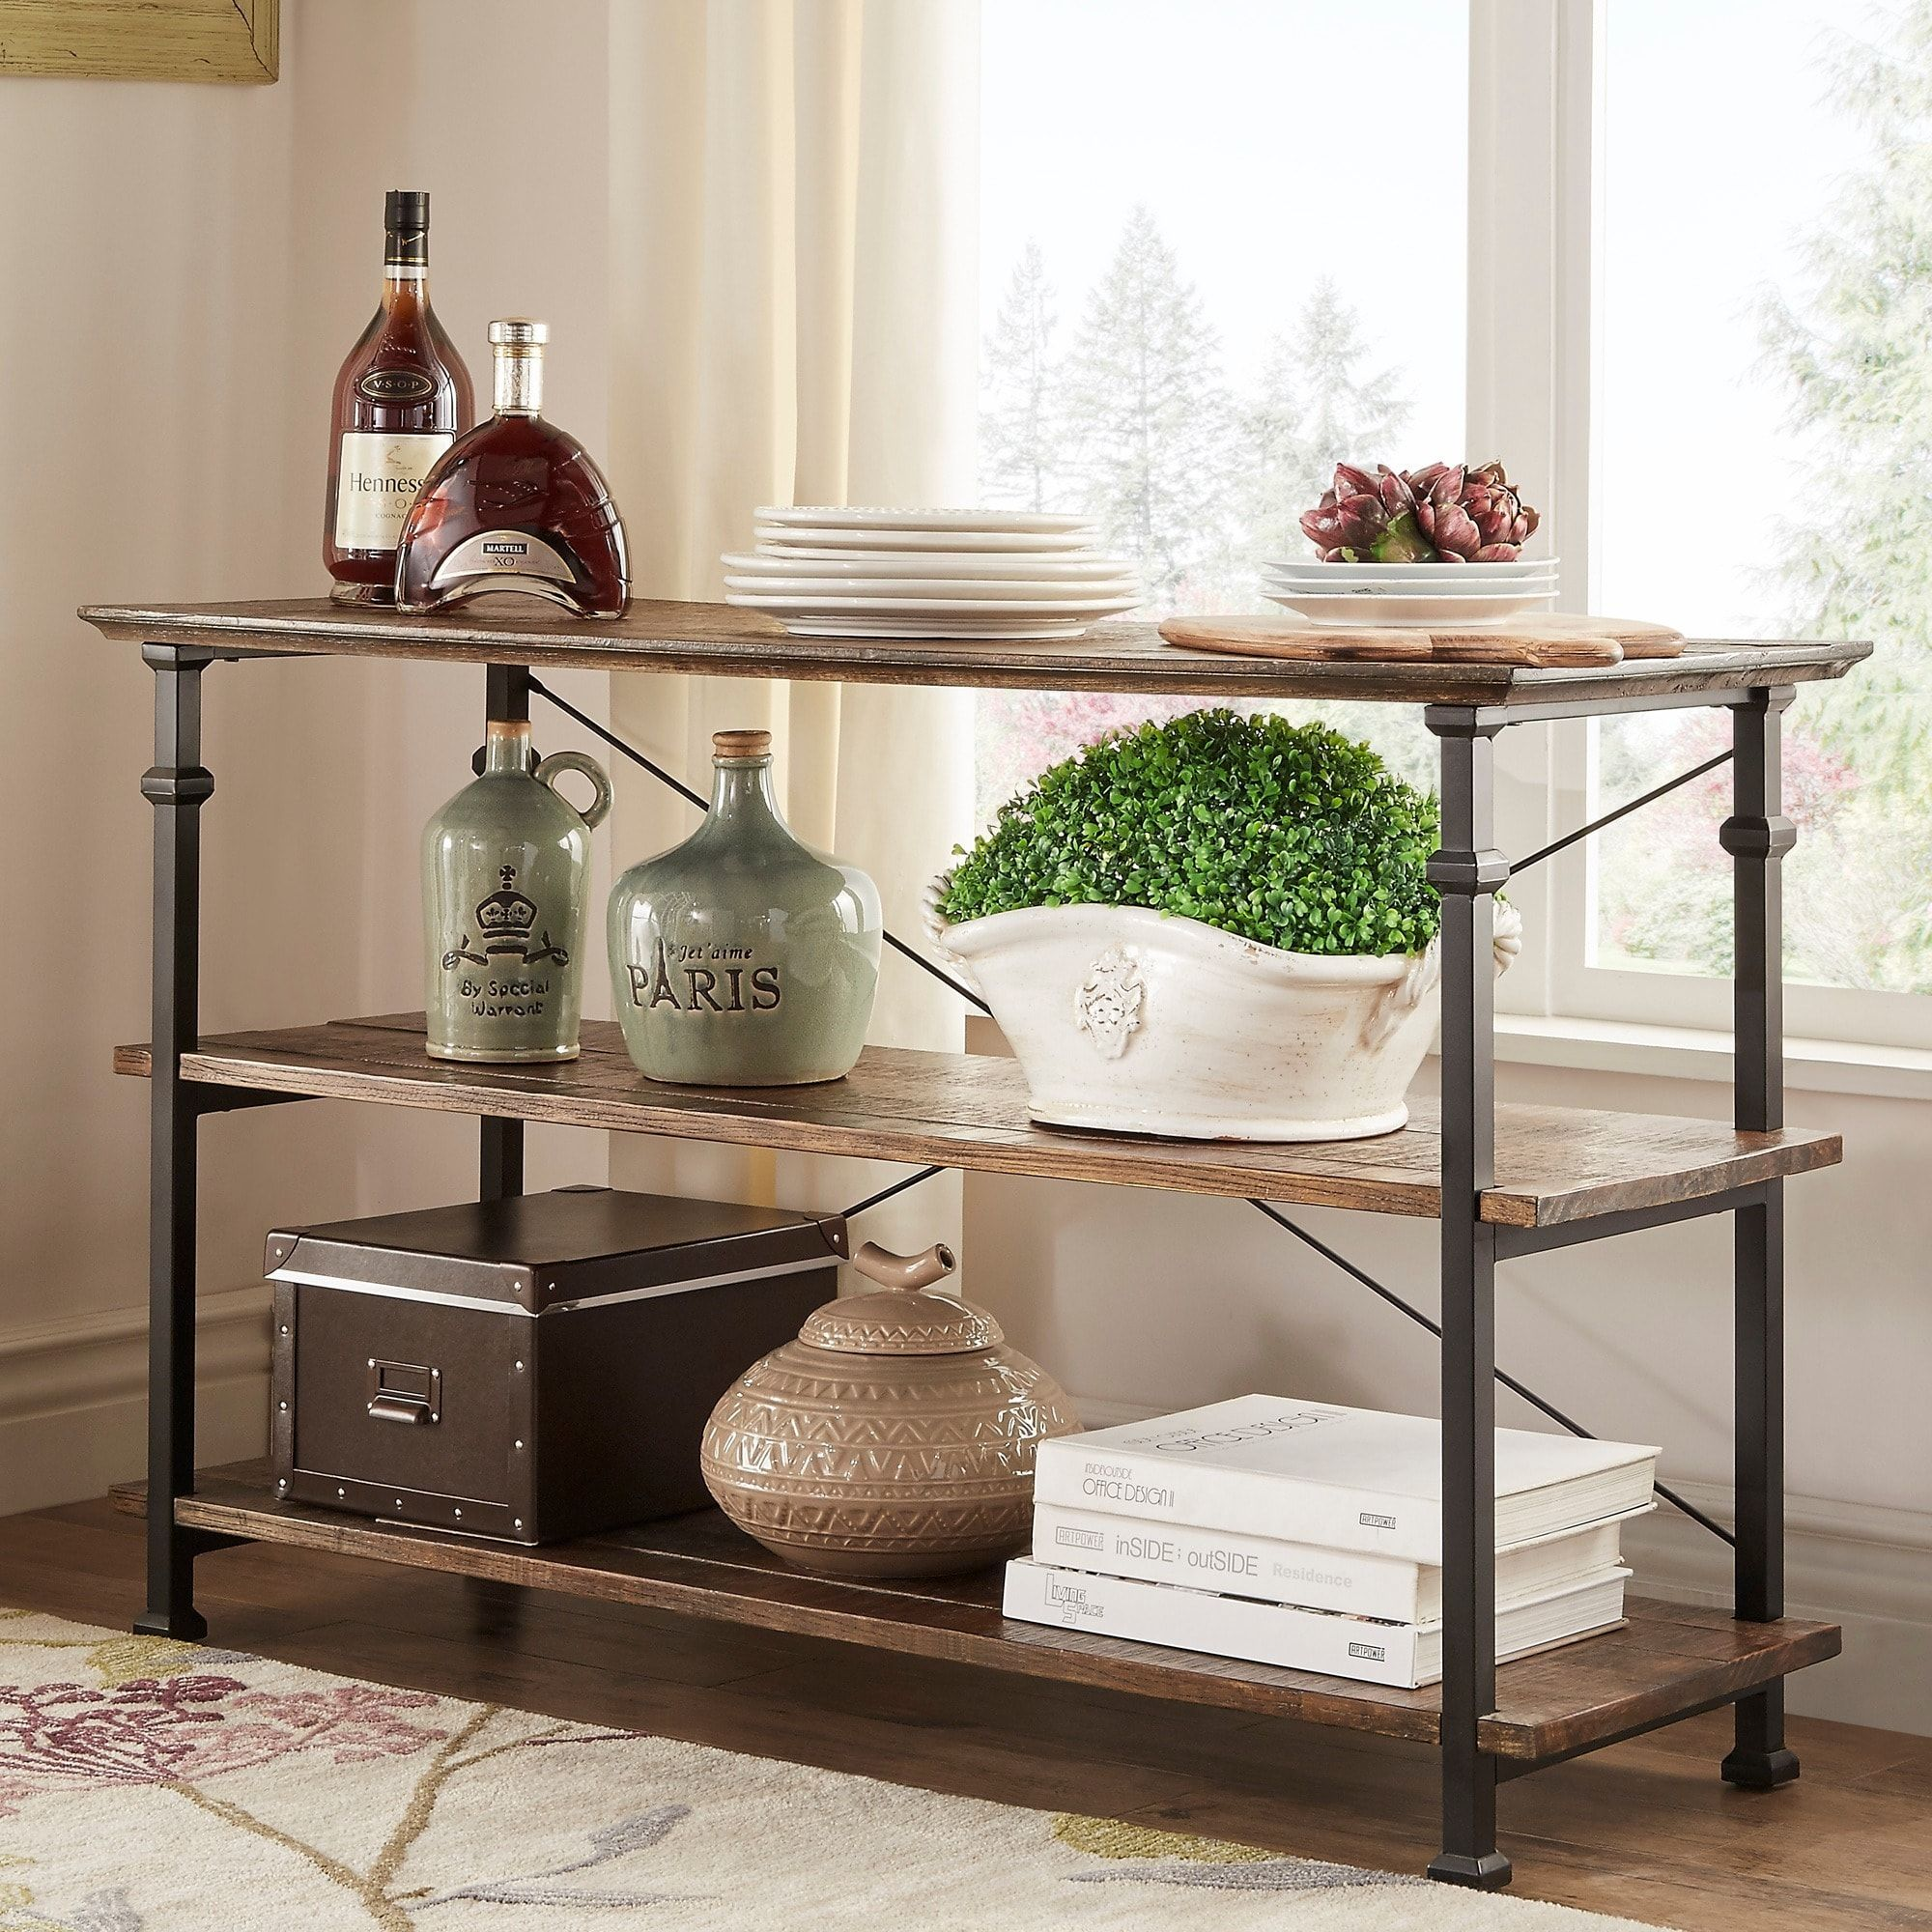 Myra Vintage Industrial TV Stand by iNSPIRE Q Classic | Overstock.com  Shopping - The